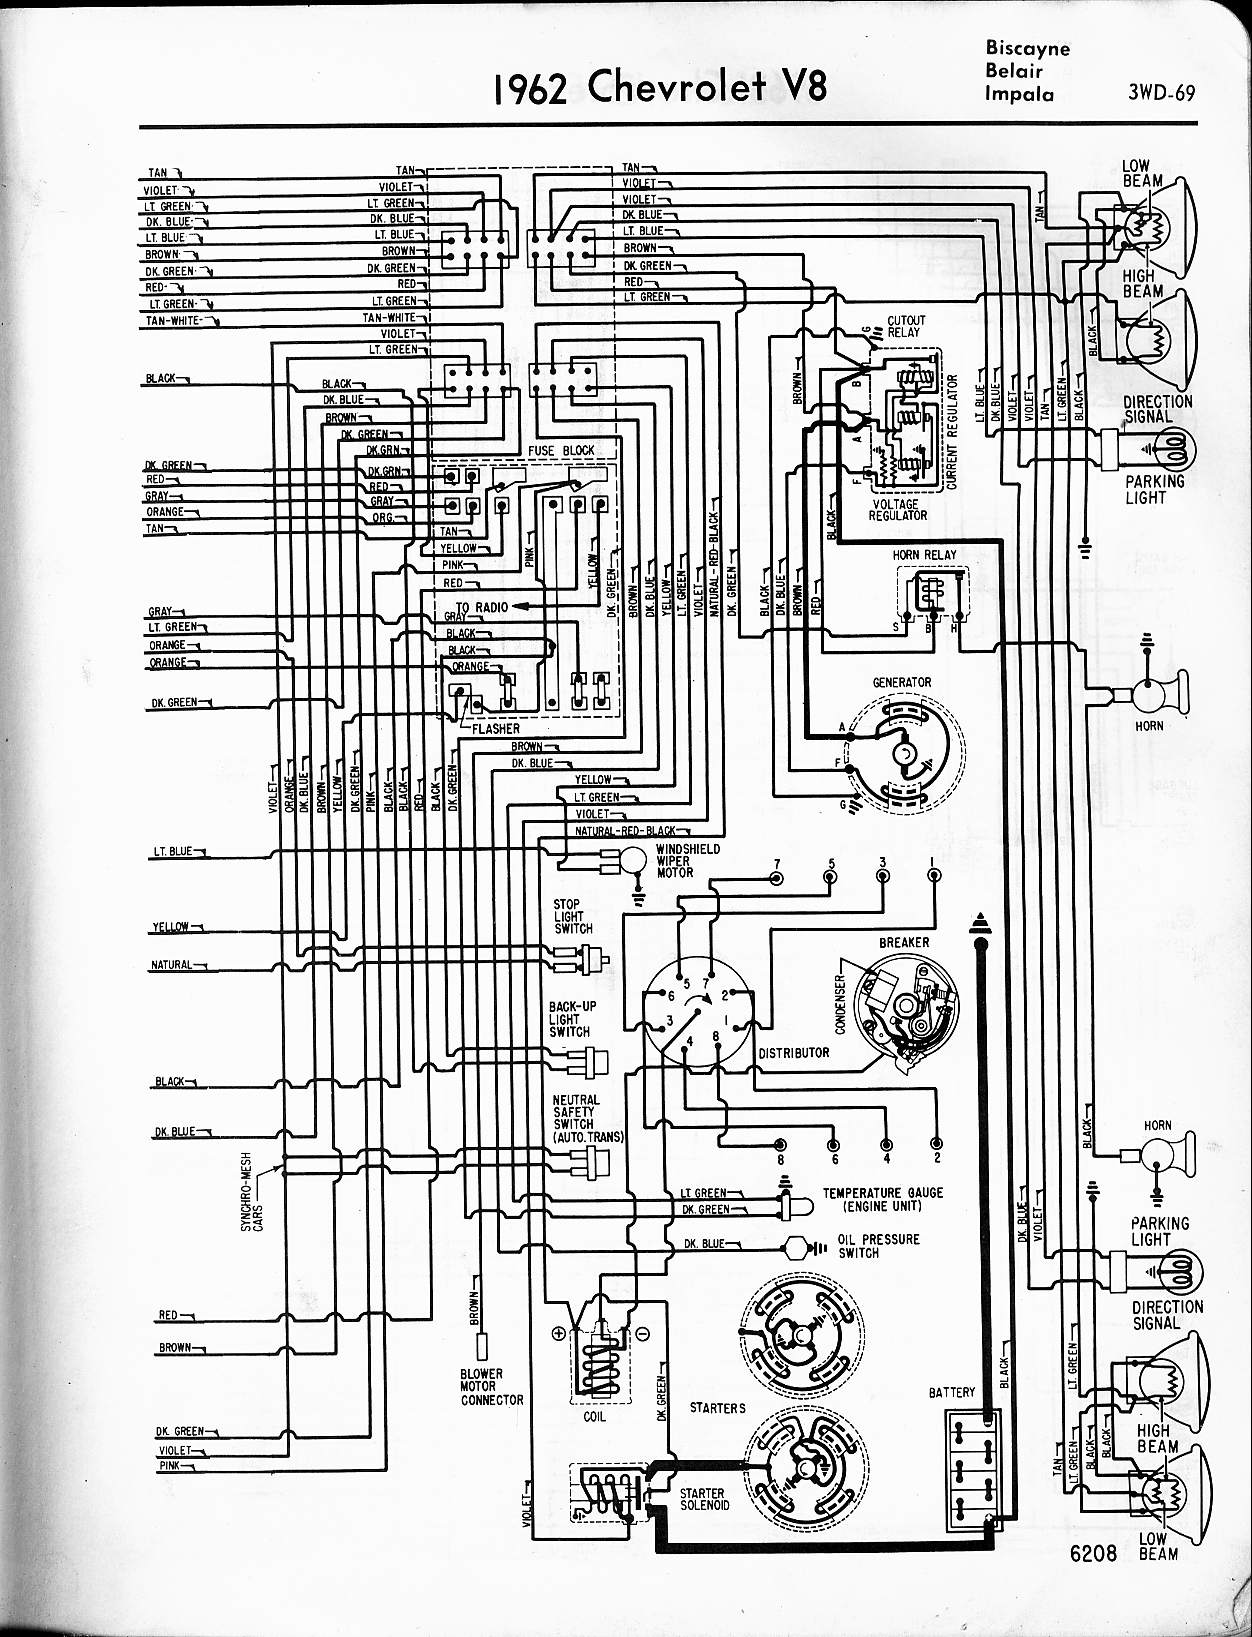 wiring diagram for 1961 chevy impala wiring diagram Wiring Diagram for 1967 Chevy Impala wiring diagram for 1961 chevy impala lok wiring diagramwiring diagram for 1961 chevy impala wiring diagram